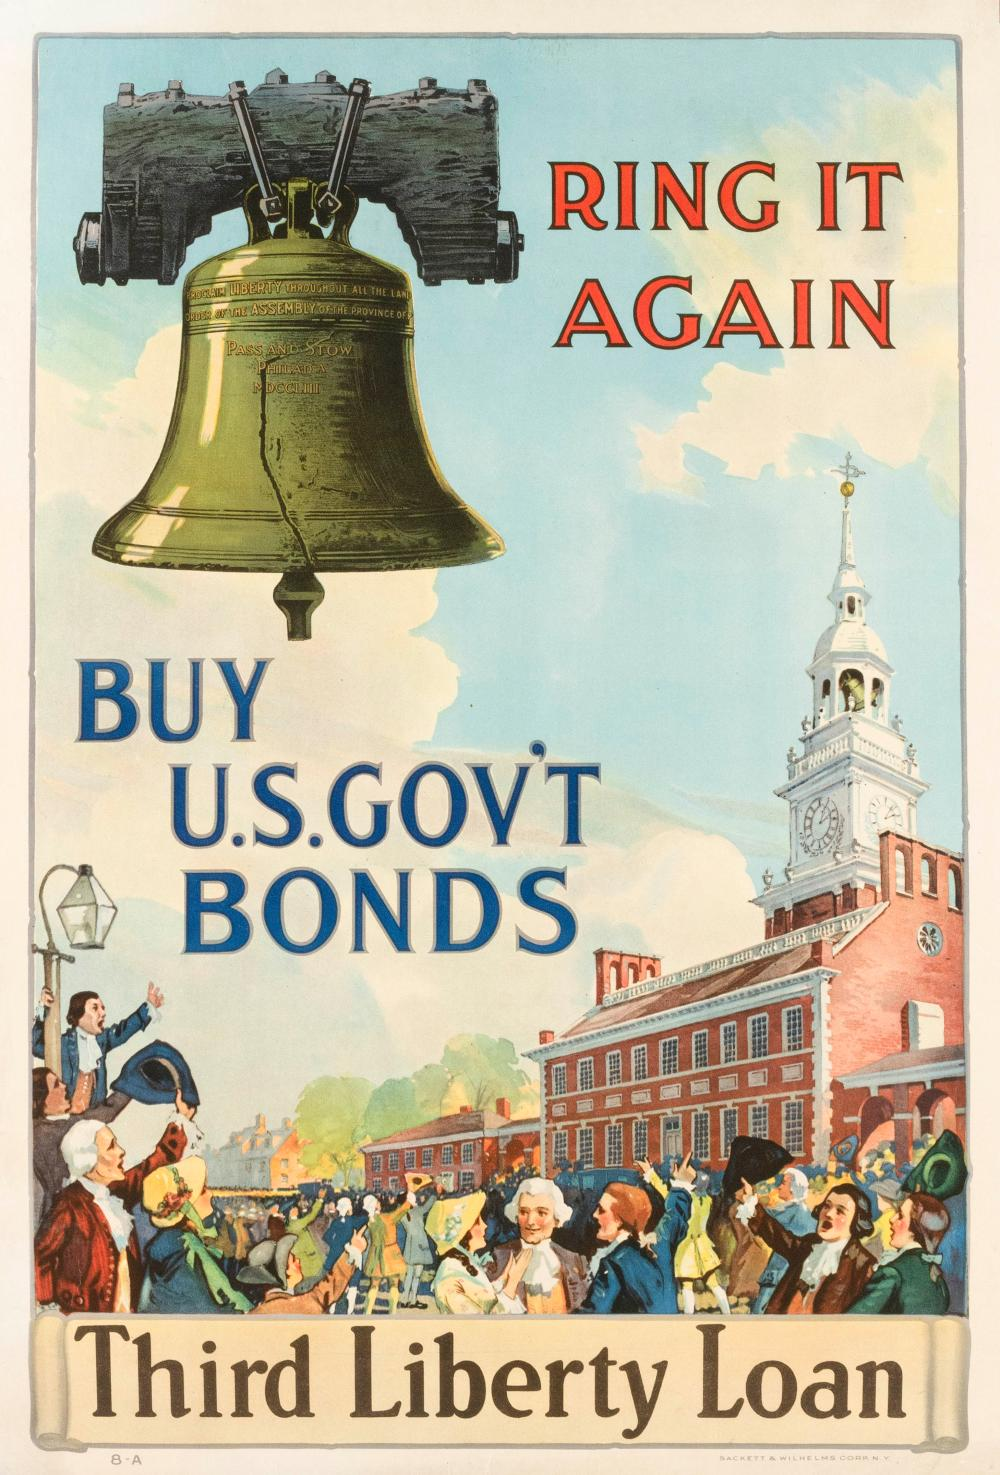 """RING IT AGAIN BUY U.S. GOV'T BONDS"" For the Third Liberty Loan, published by Sackett & Wilhelms Corp., N.Y. Depicts the Liberty Bel.."